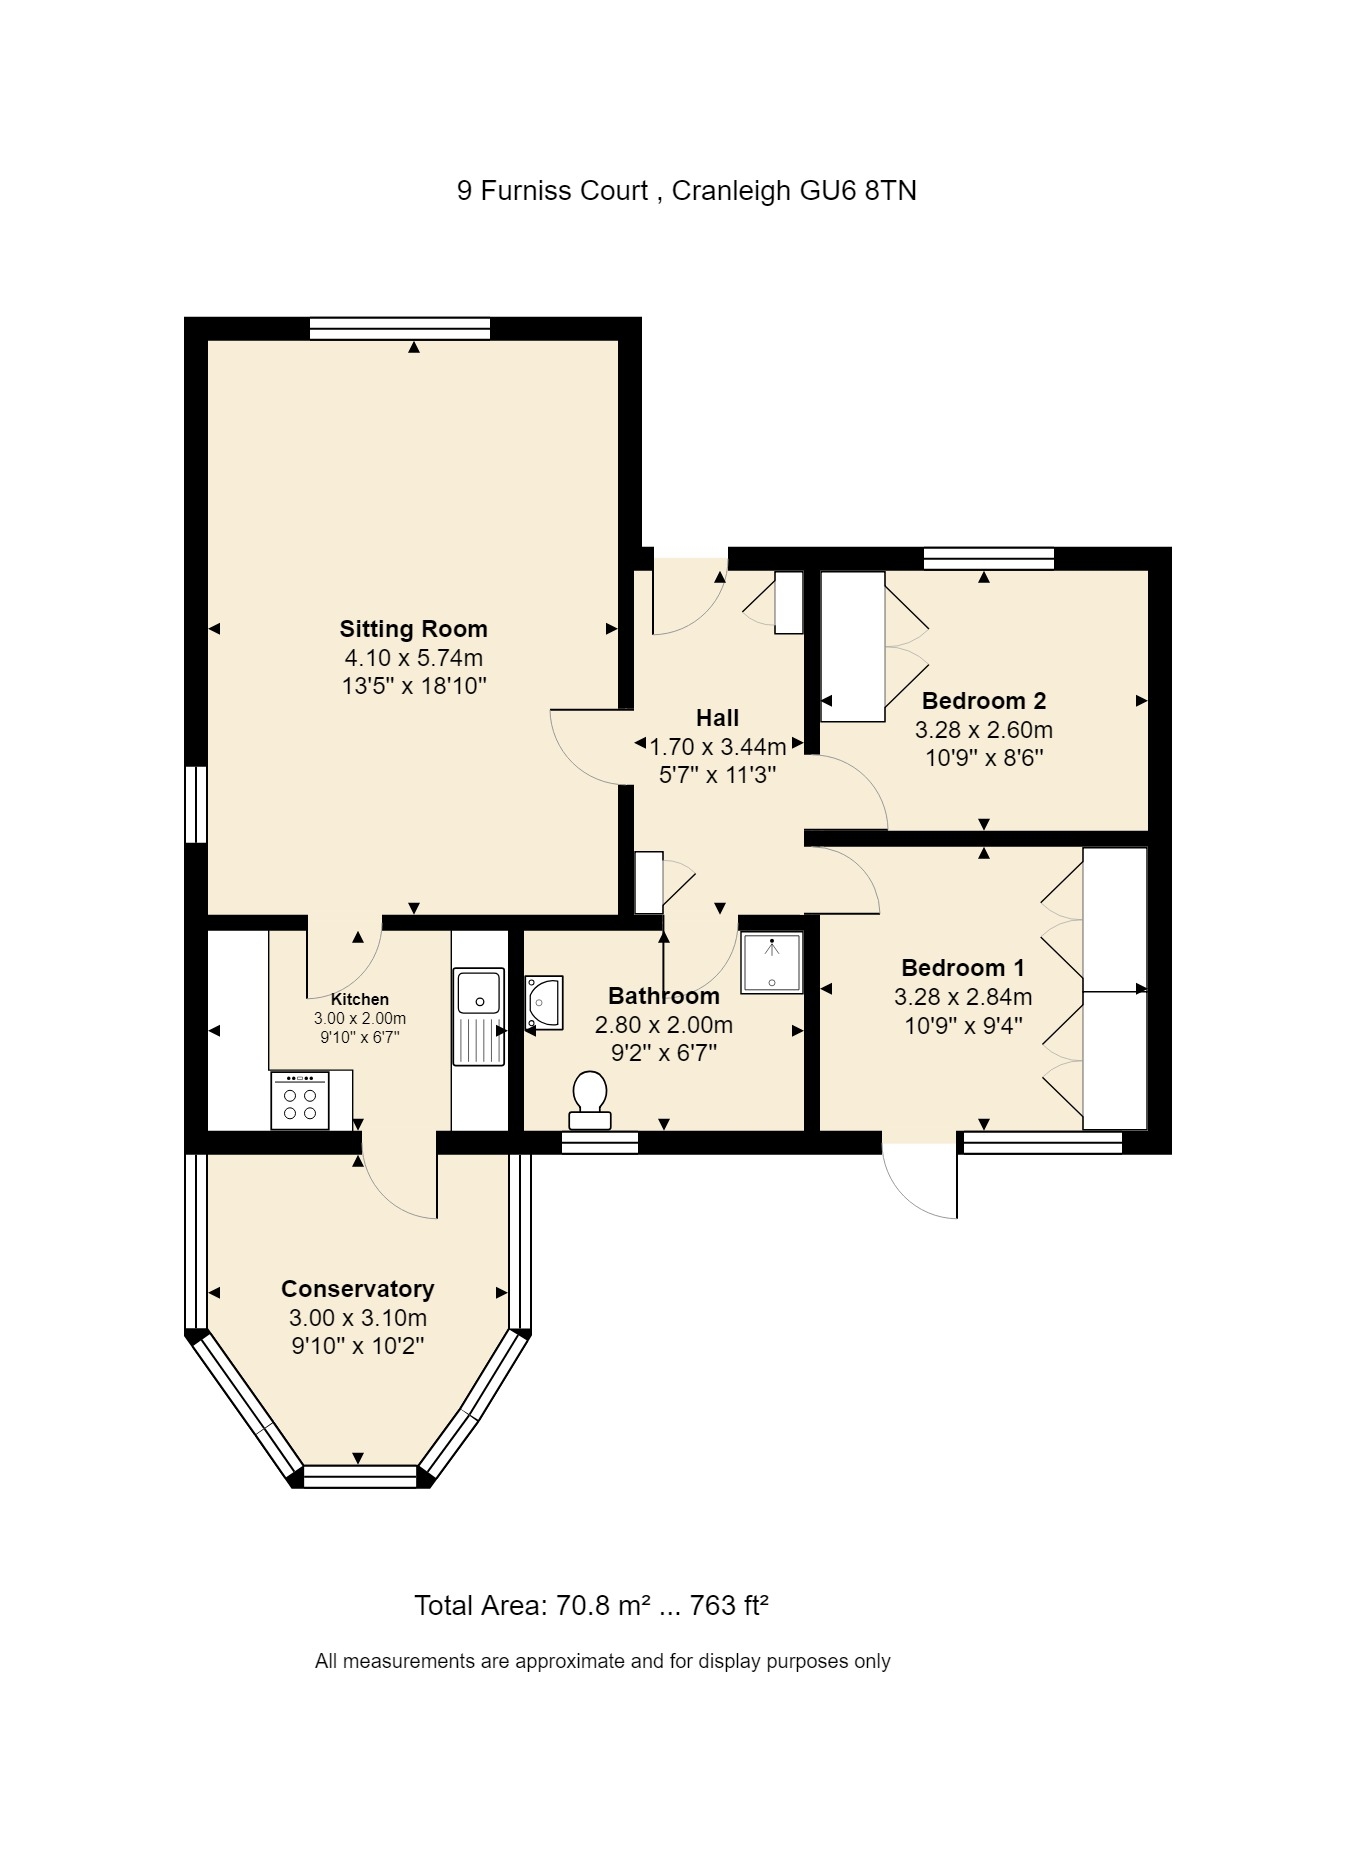 9 Furniss Court Floorplan